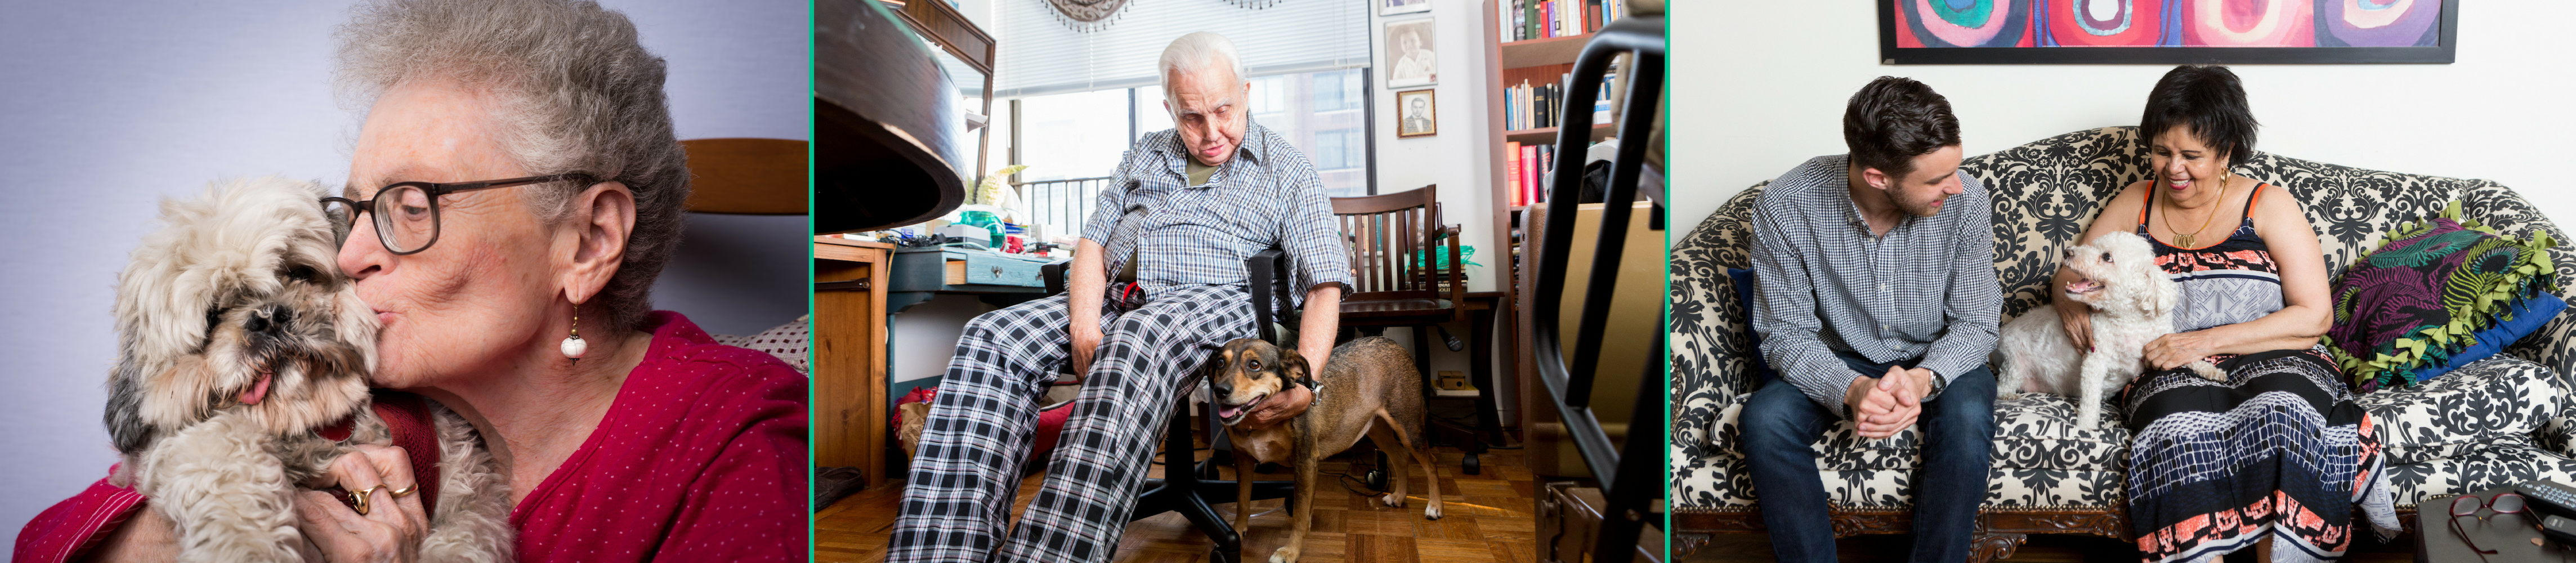 Helping Keep New York City Pets and People Together